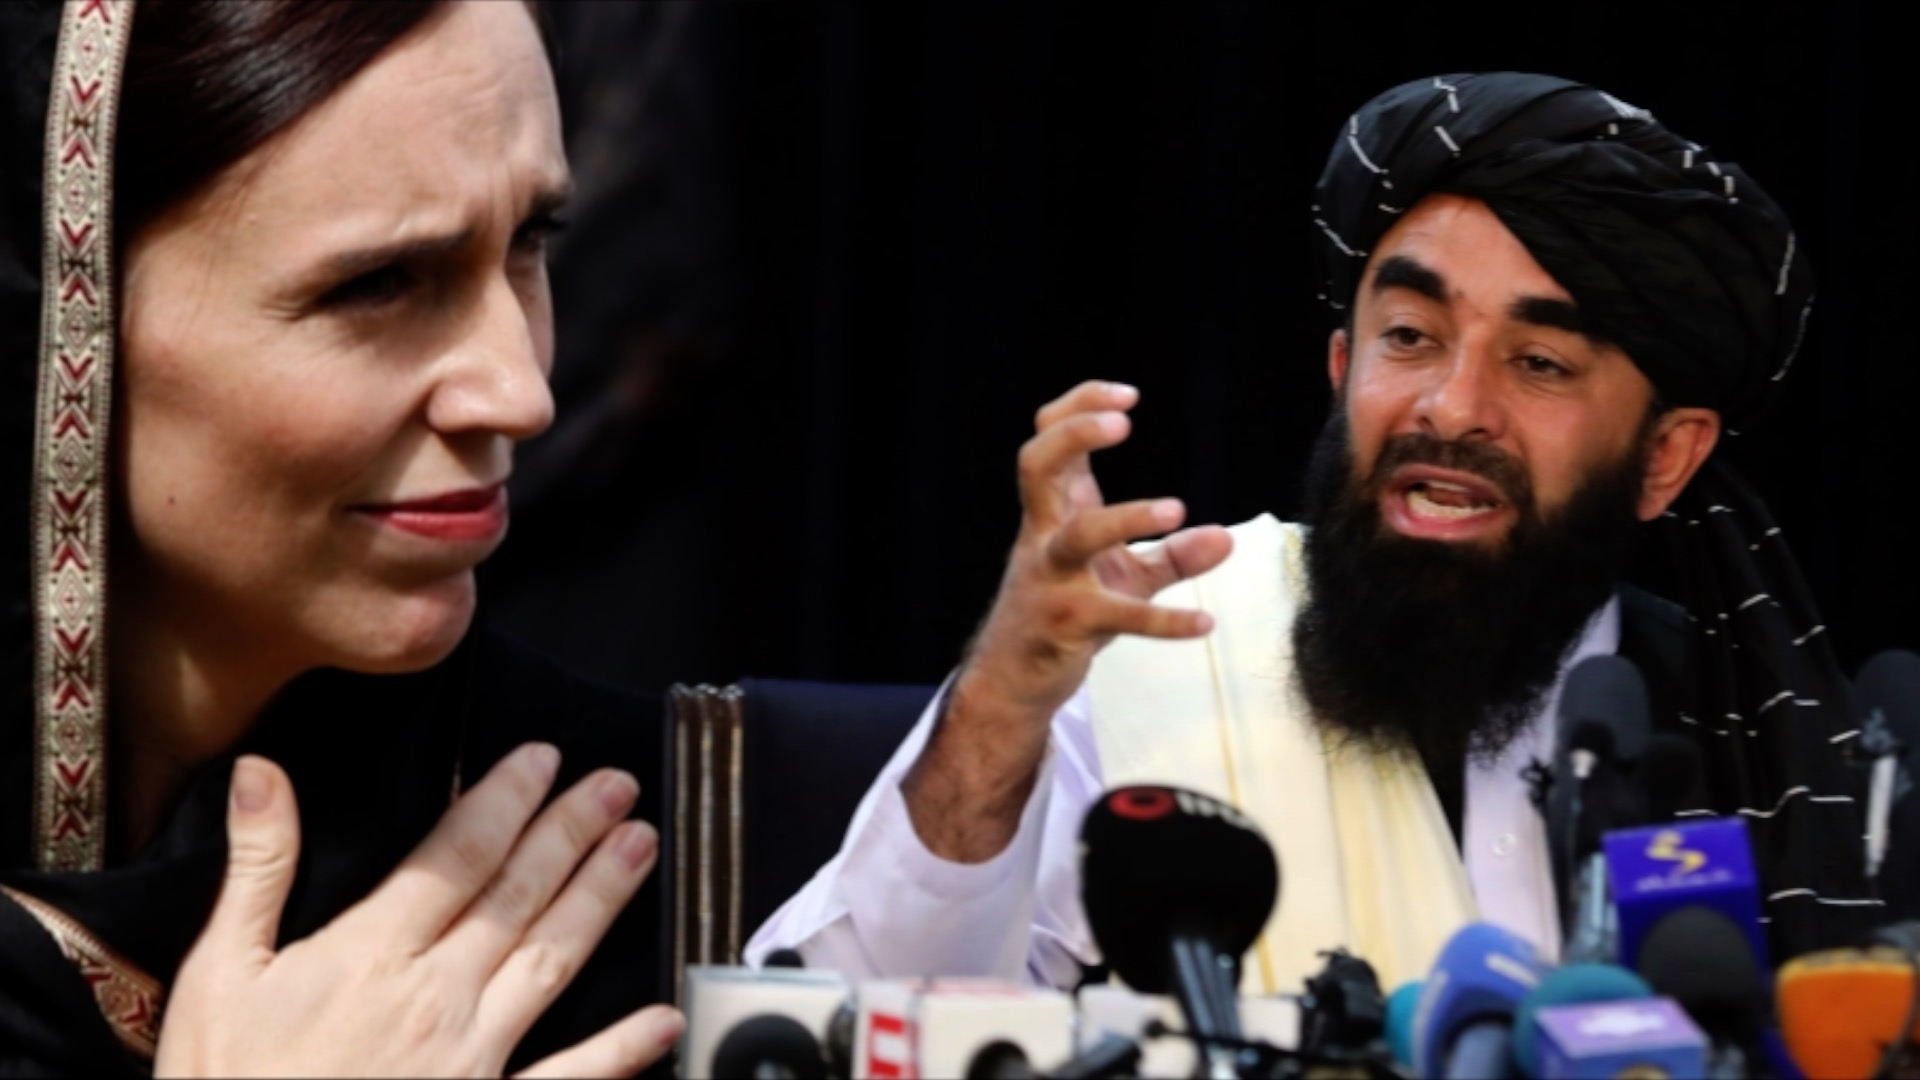 Taliban thank New Zealand for $3 million in aid